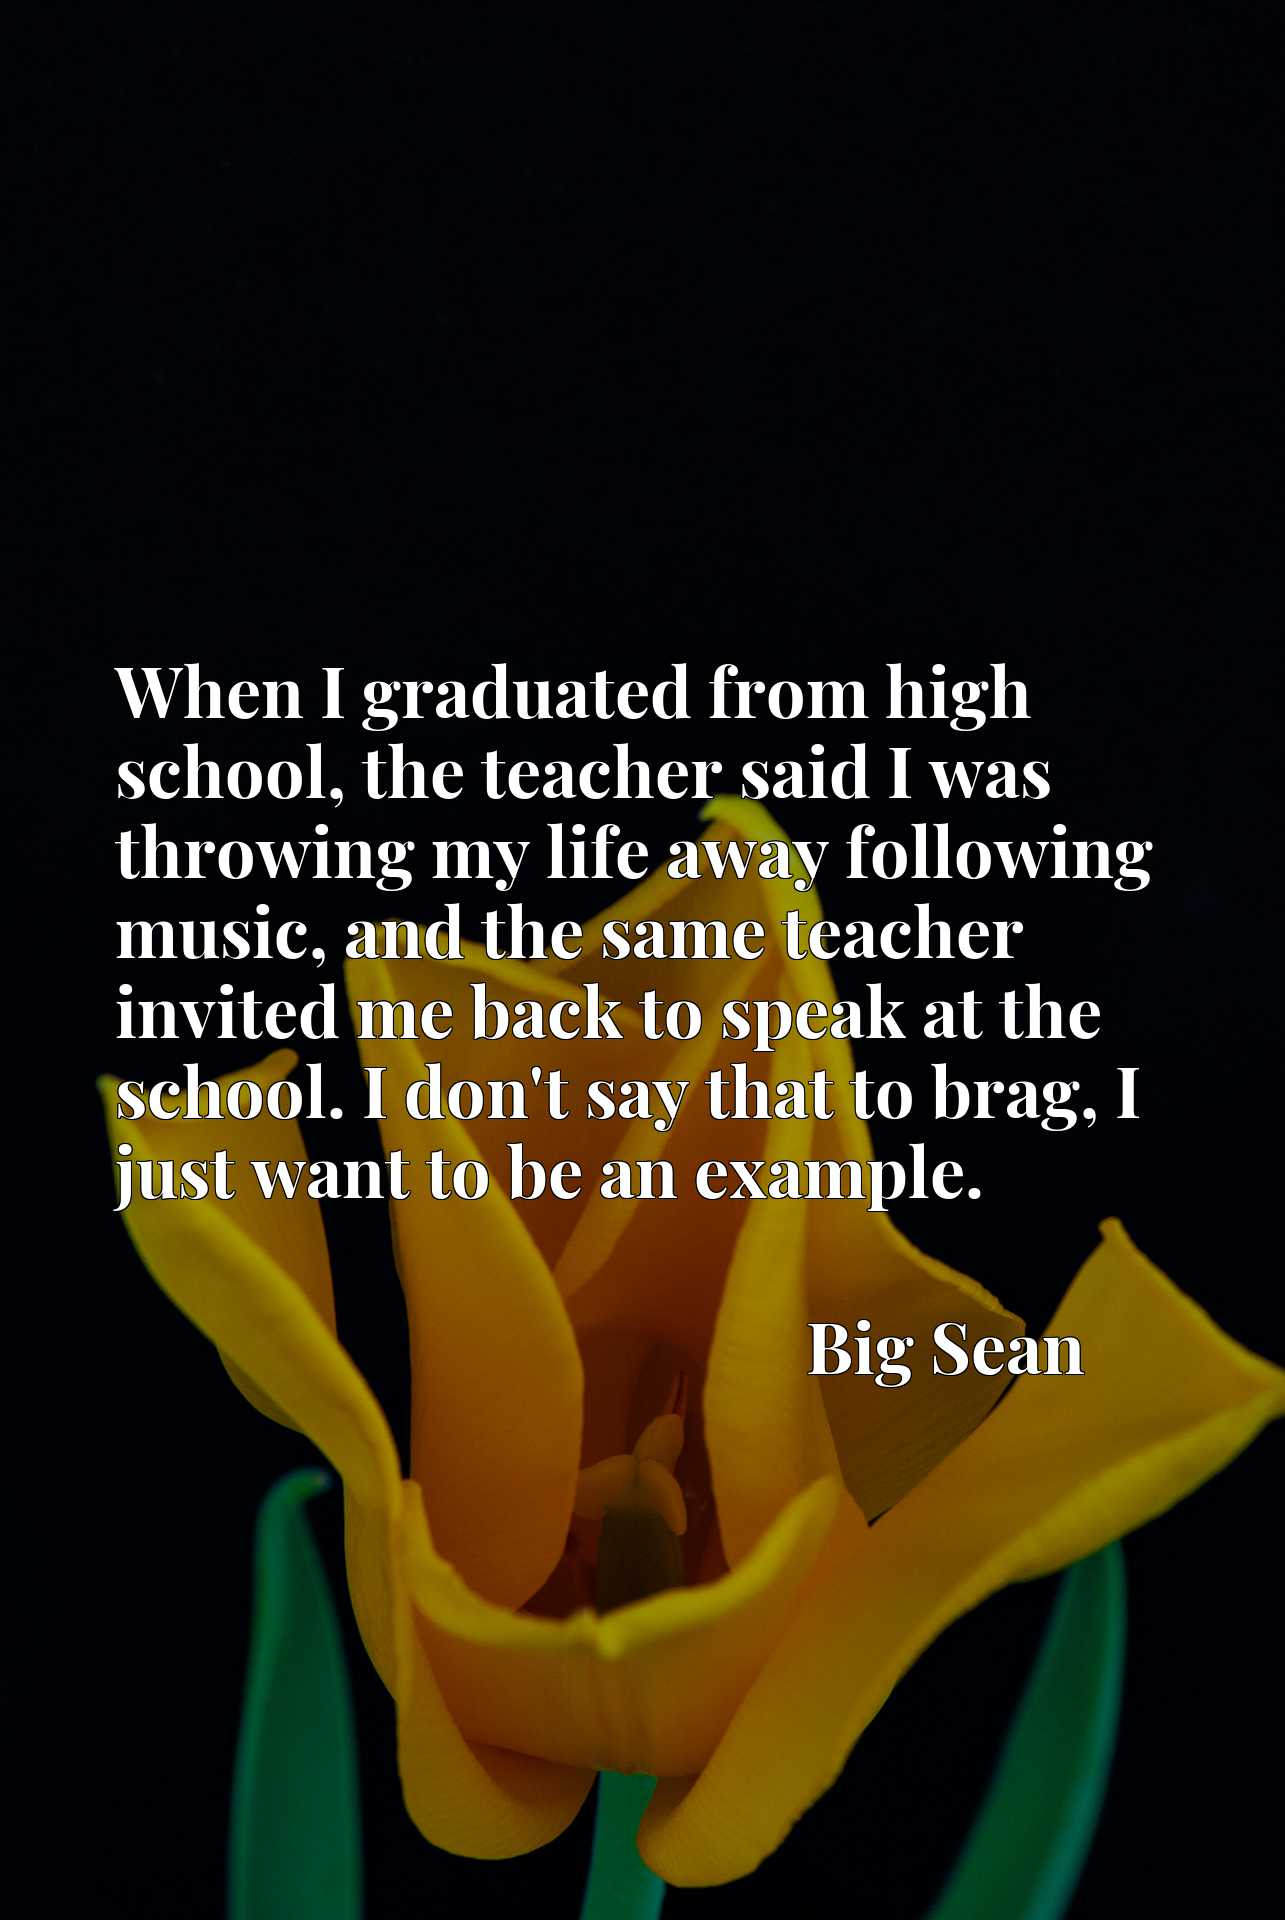 When I graduated from high school, the teacher said I was throwing my life away following music, and the same teacher invited me back to speak at the school. I don't say that to brag, I just want to be an example.